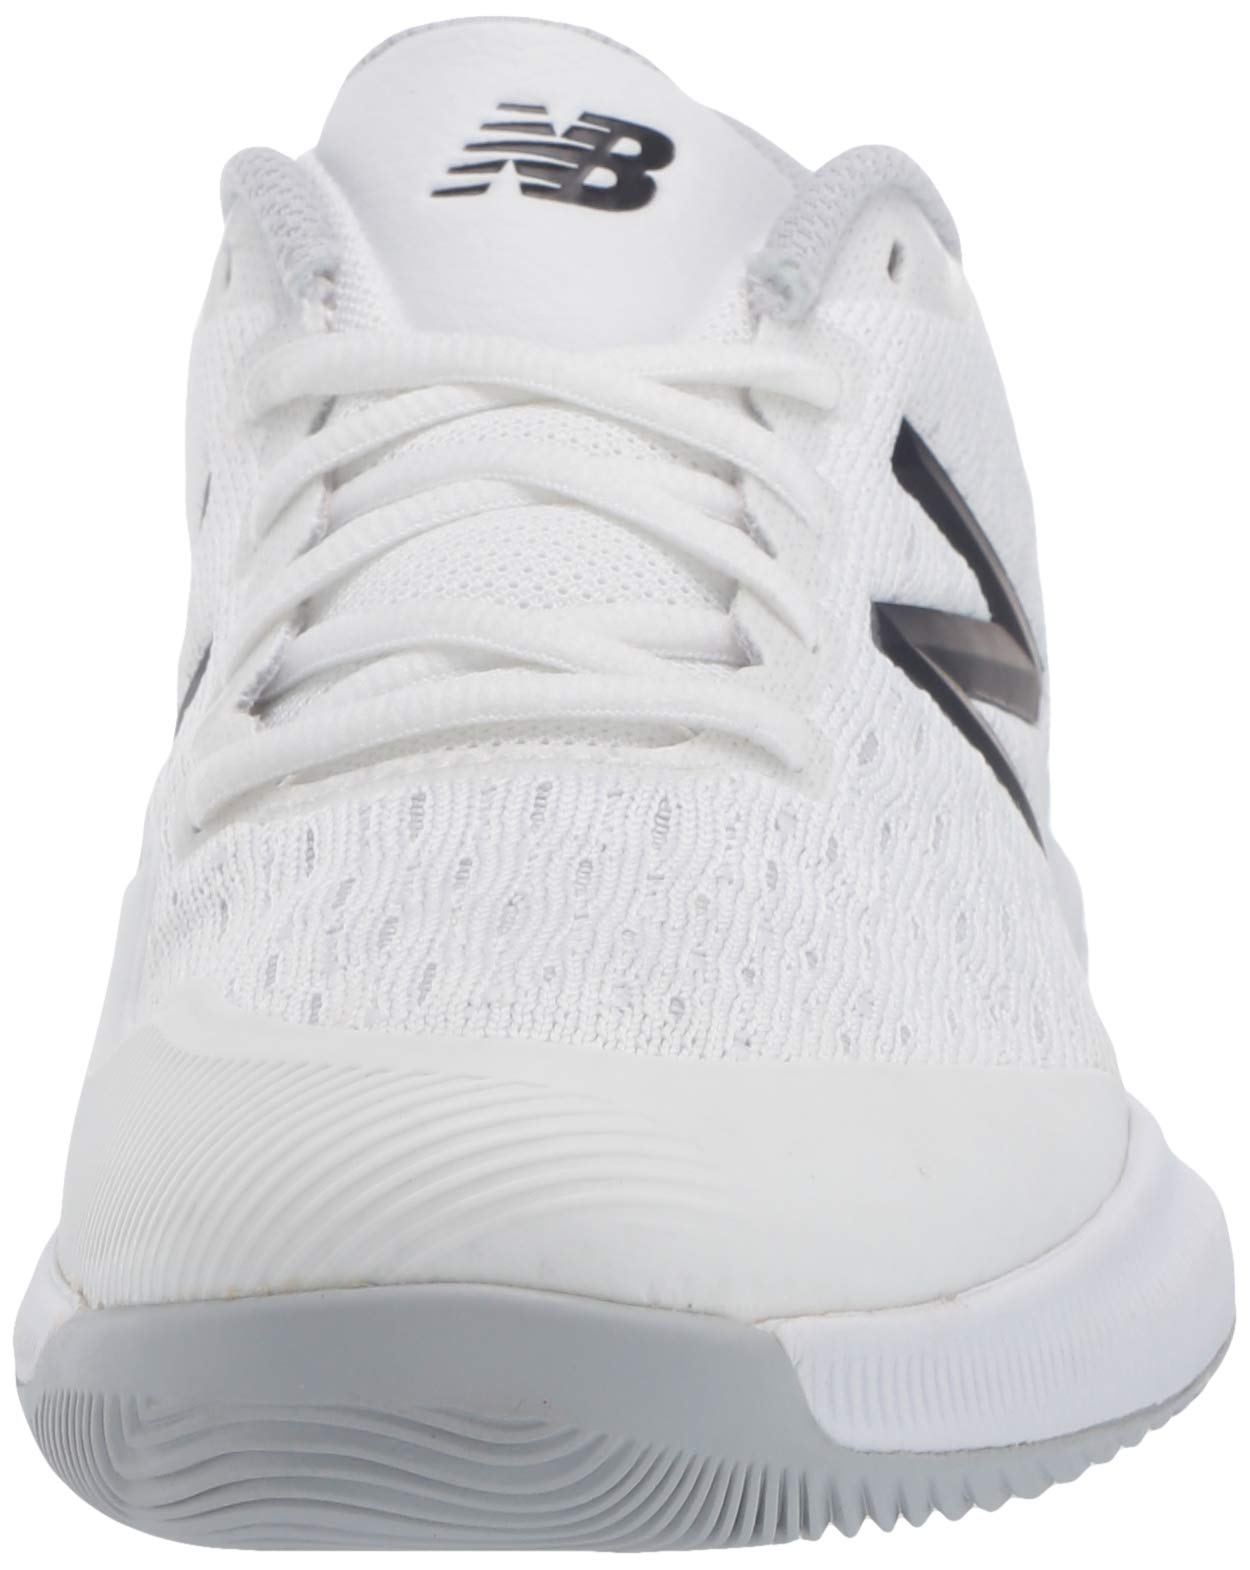 New Balance Women's 996v4 Hard Court Tennis Shoe